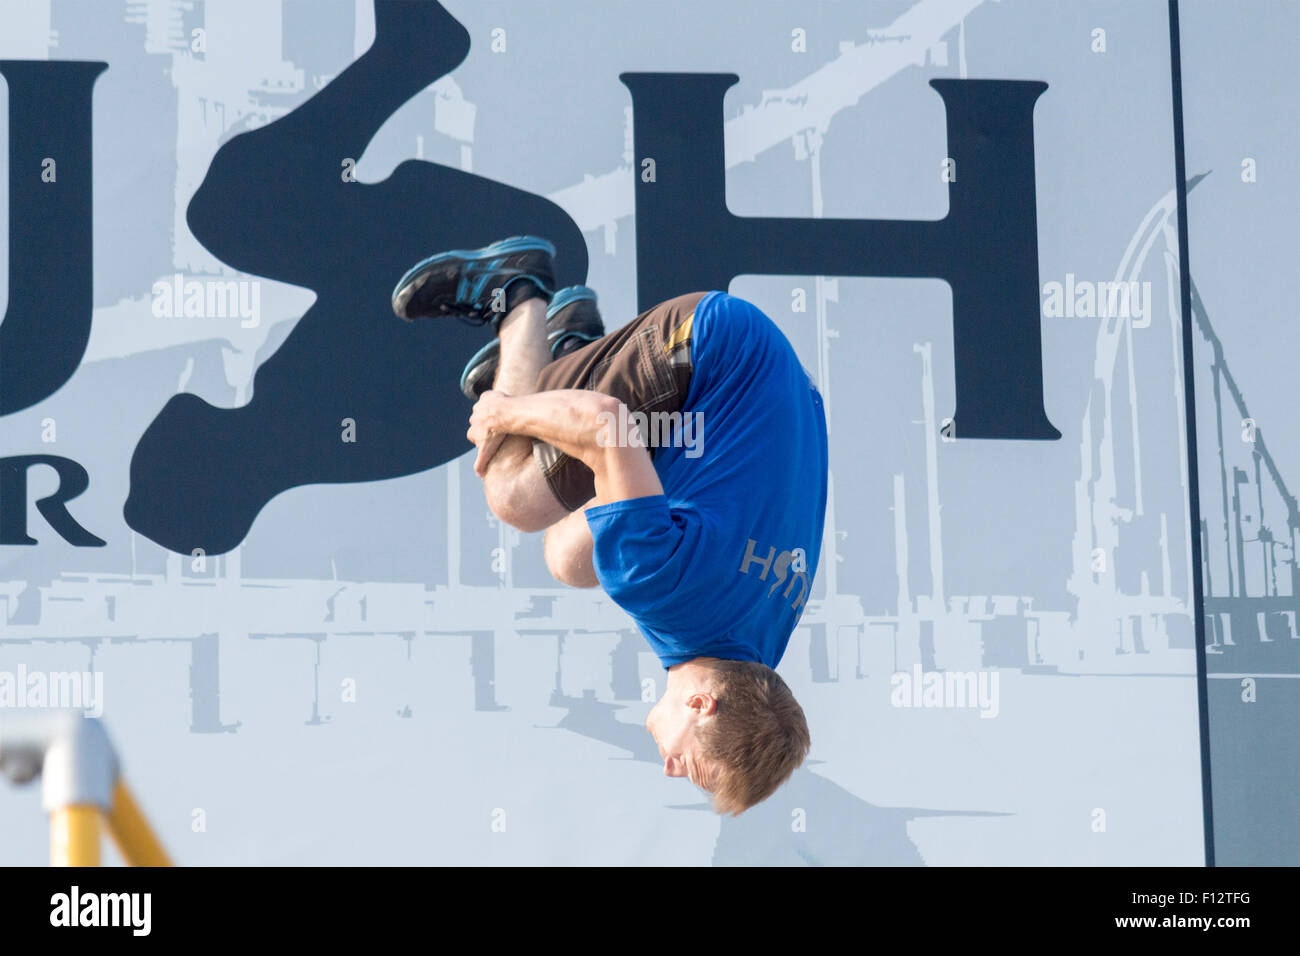 the-acrobatic-team-rush-parkour-performs